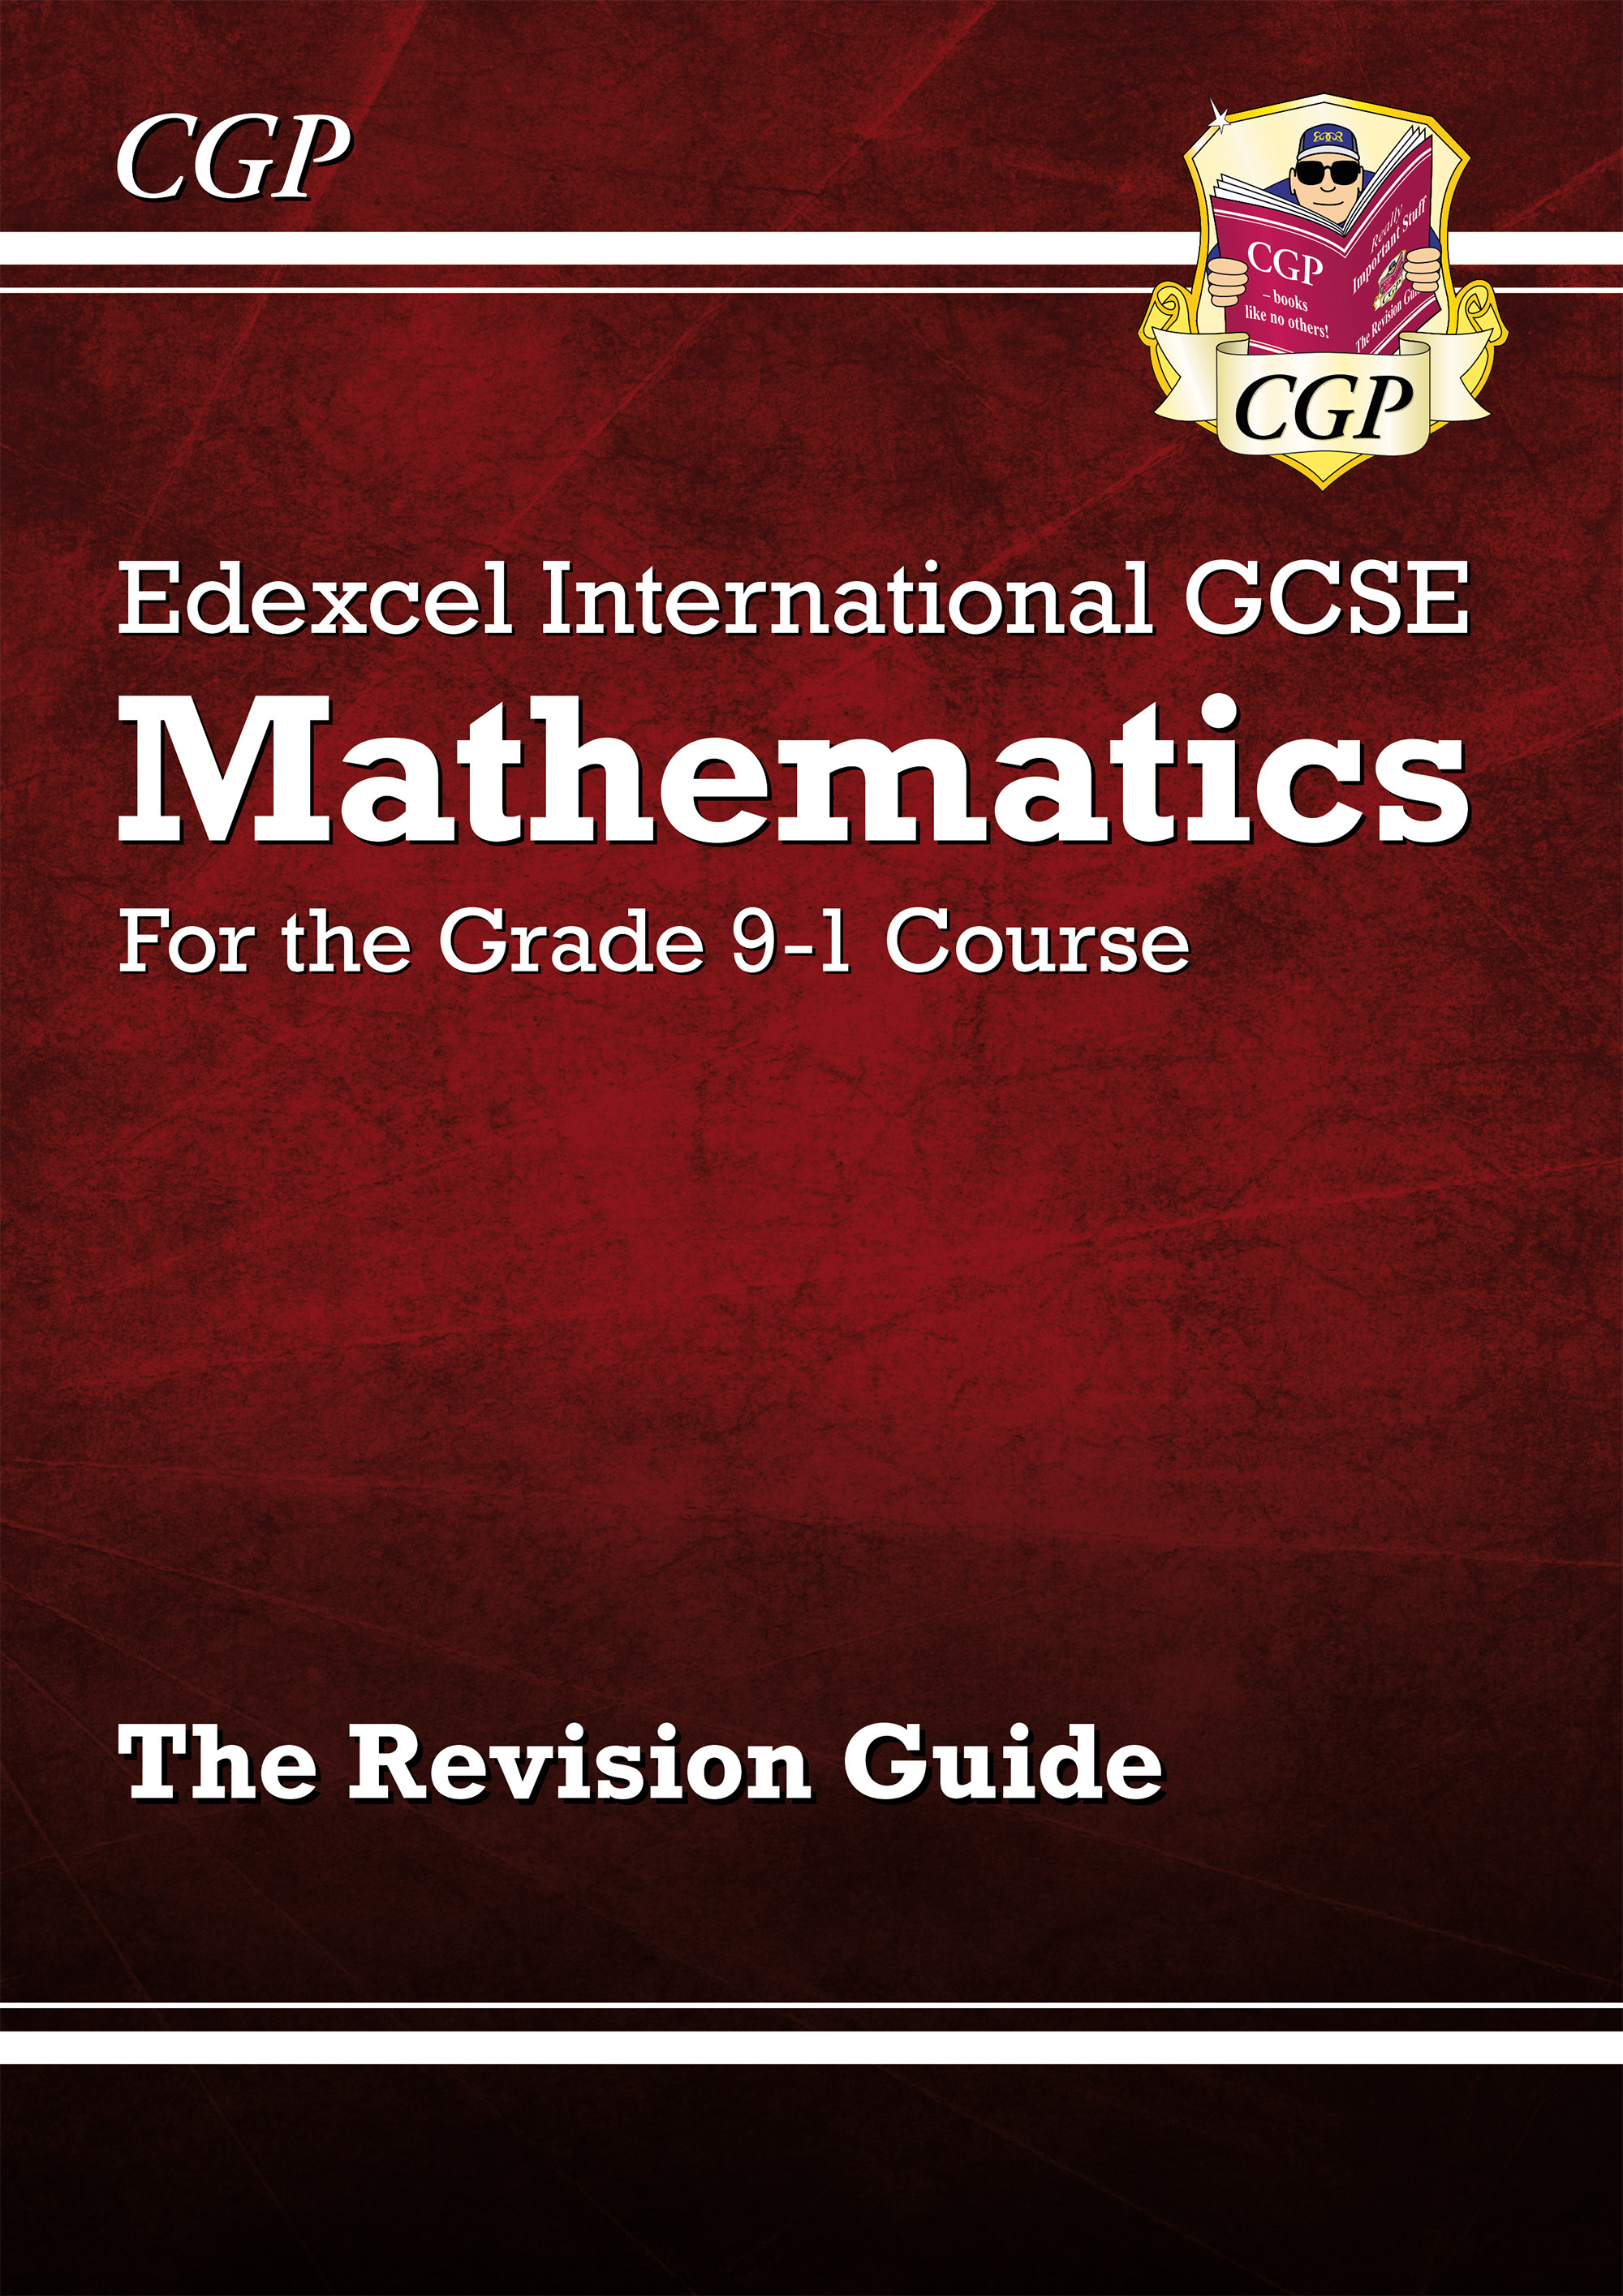 MERI44DK - New Edexcel International GCSE Maths Revision Guide - for the Grade 9-1 Course (including